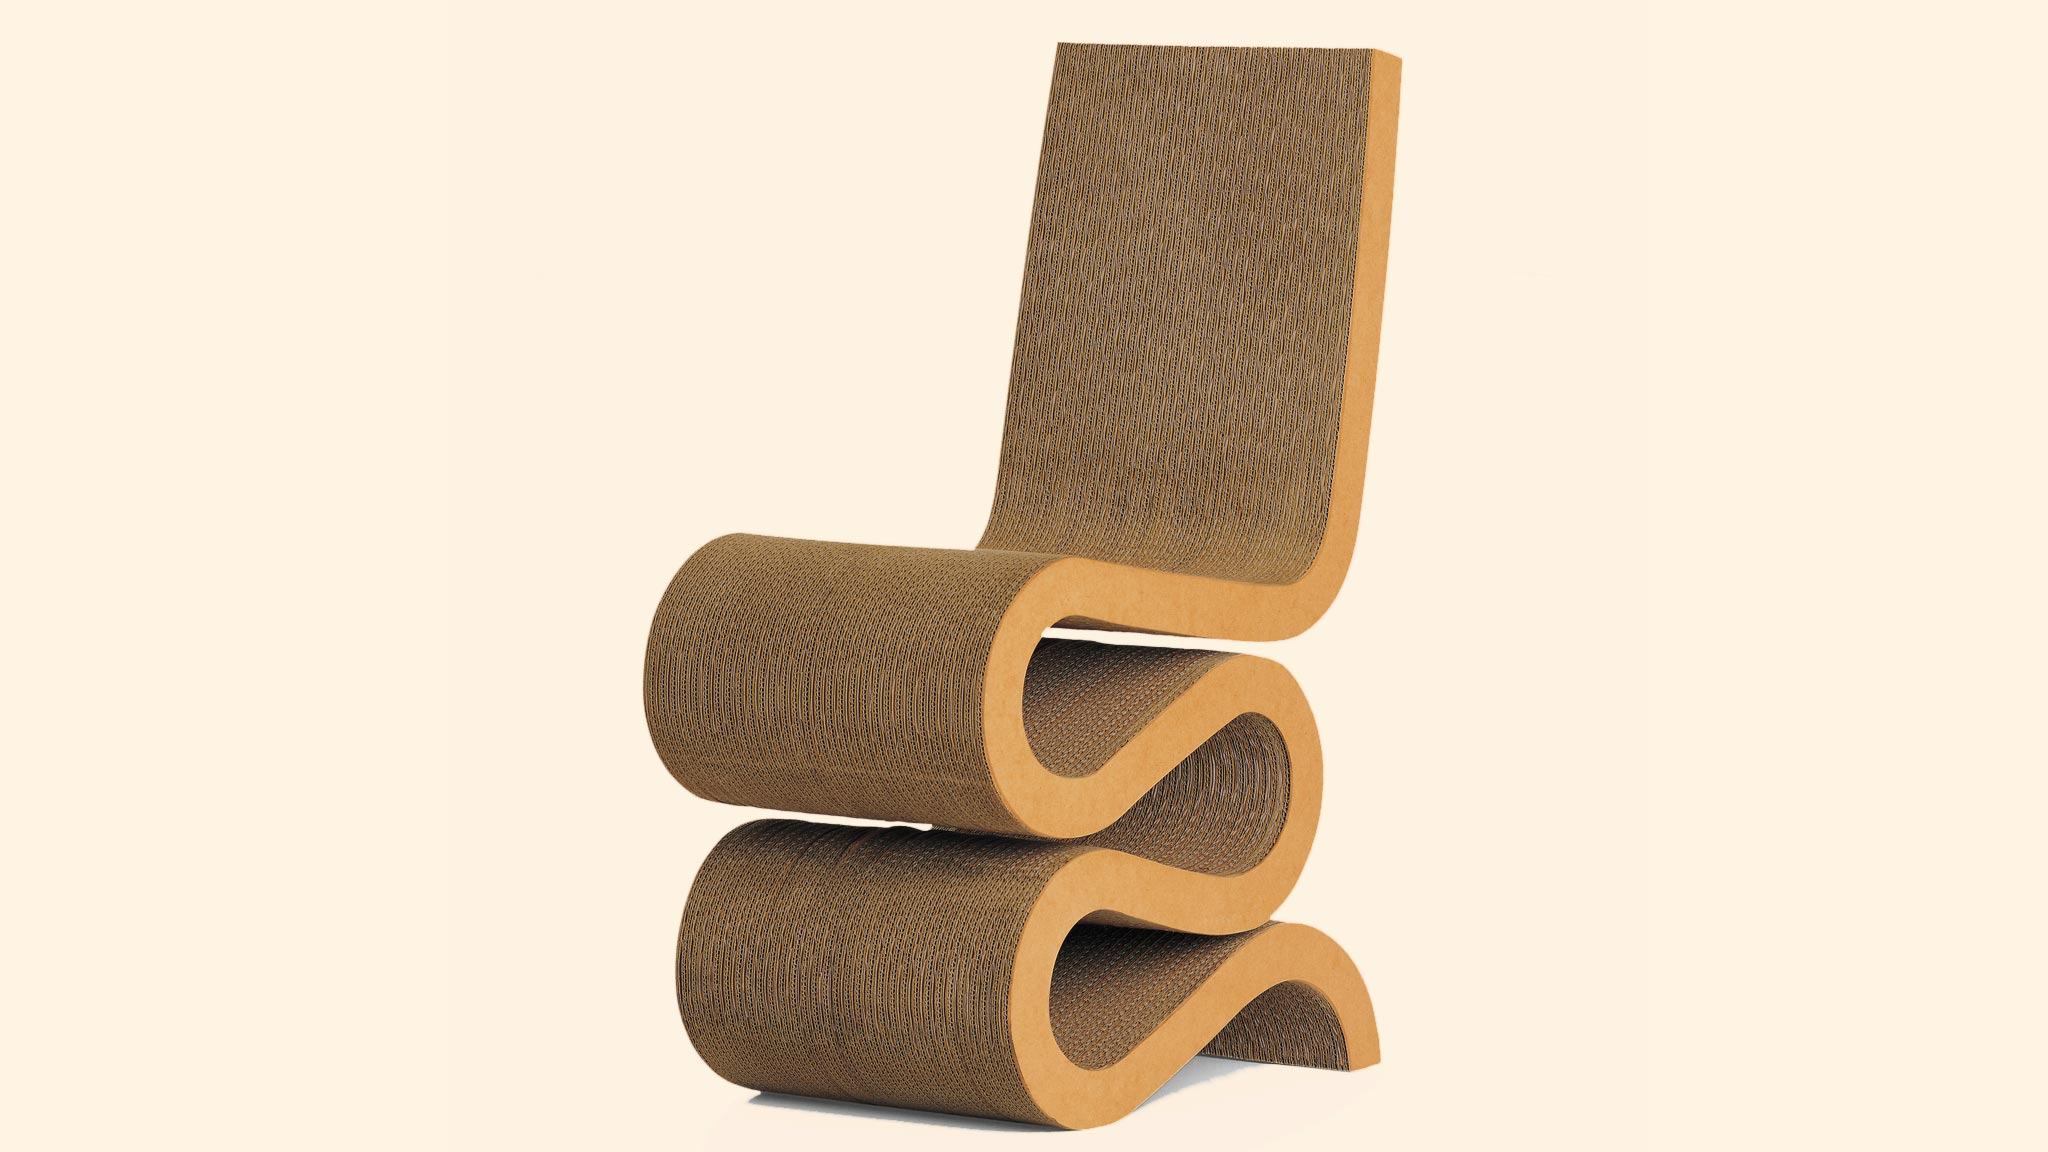 Frank Gehry Chaise Carton design classic: frank gehry's wiggle side chair   financial